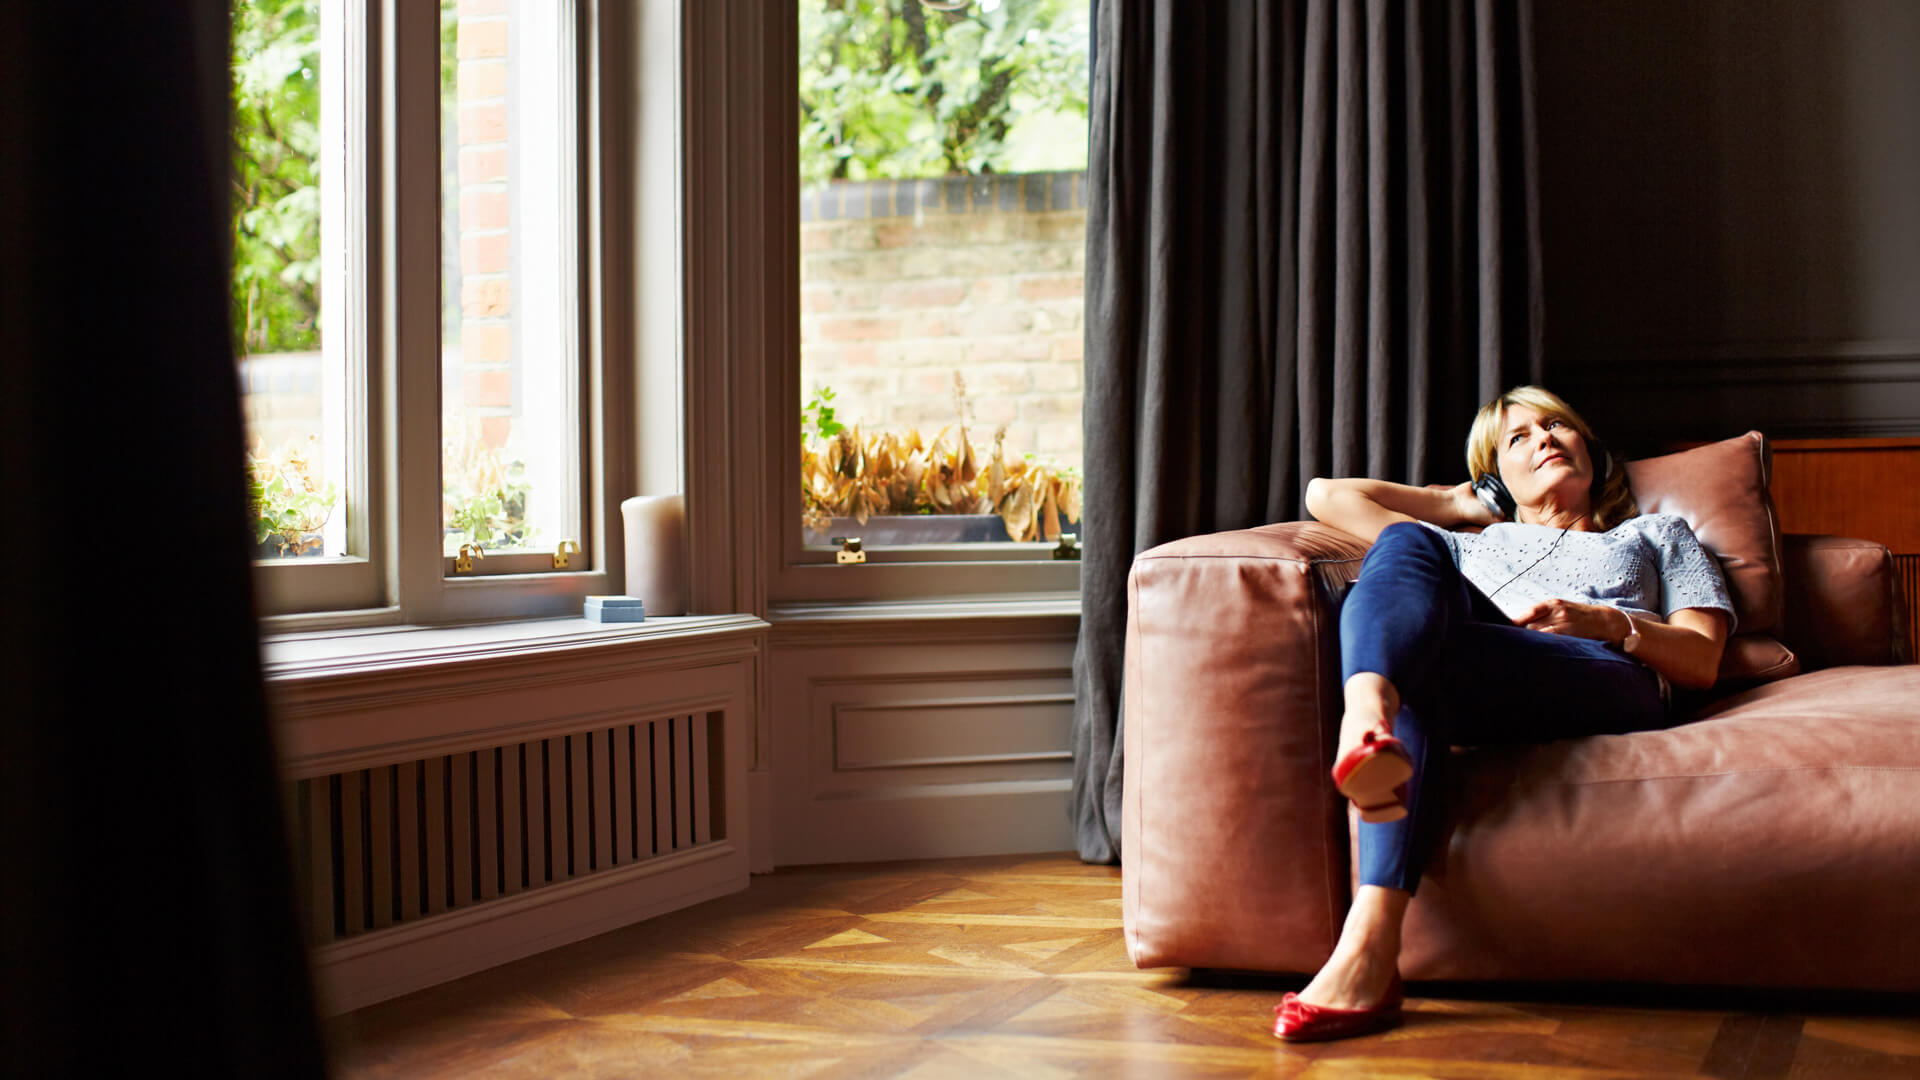 Woman On Sofa With Bay Window Listening To Music